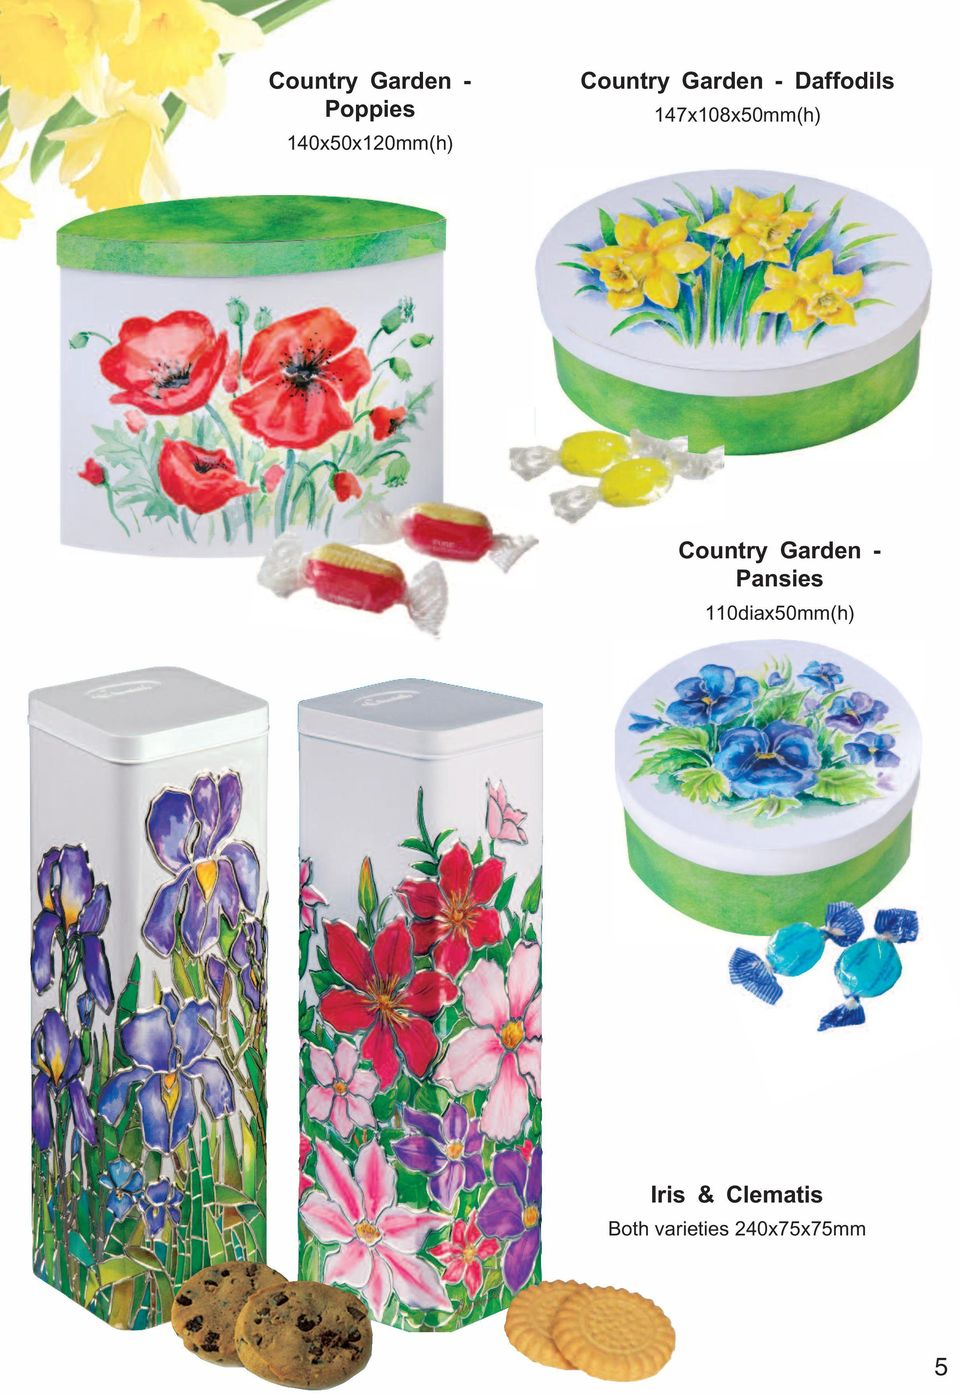 147x108x50mm(h) Country Garden - Pansies